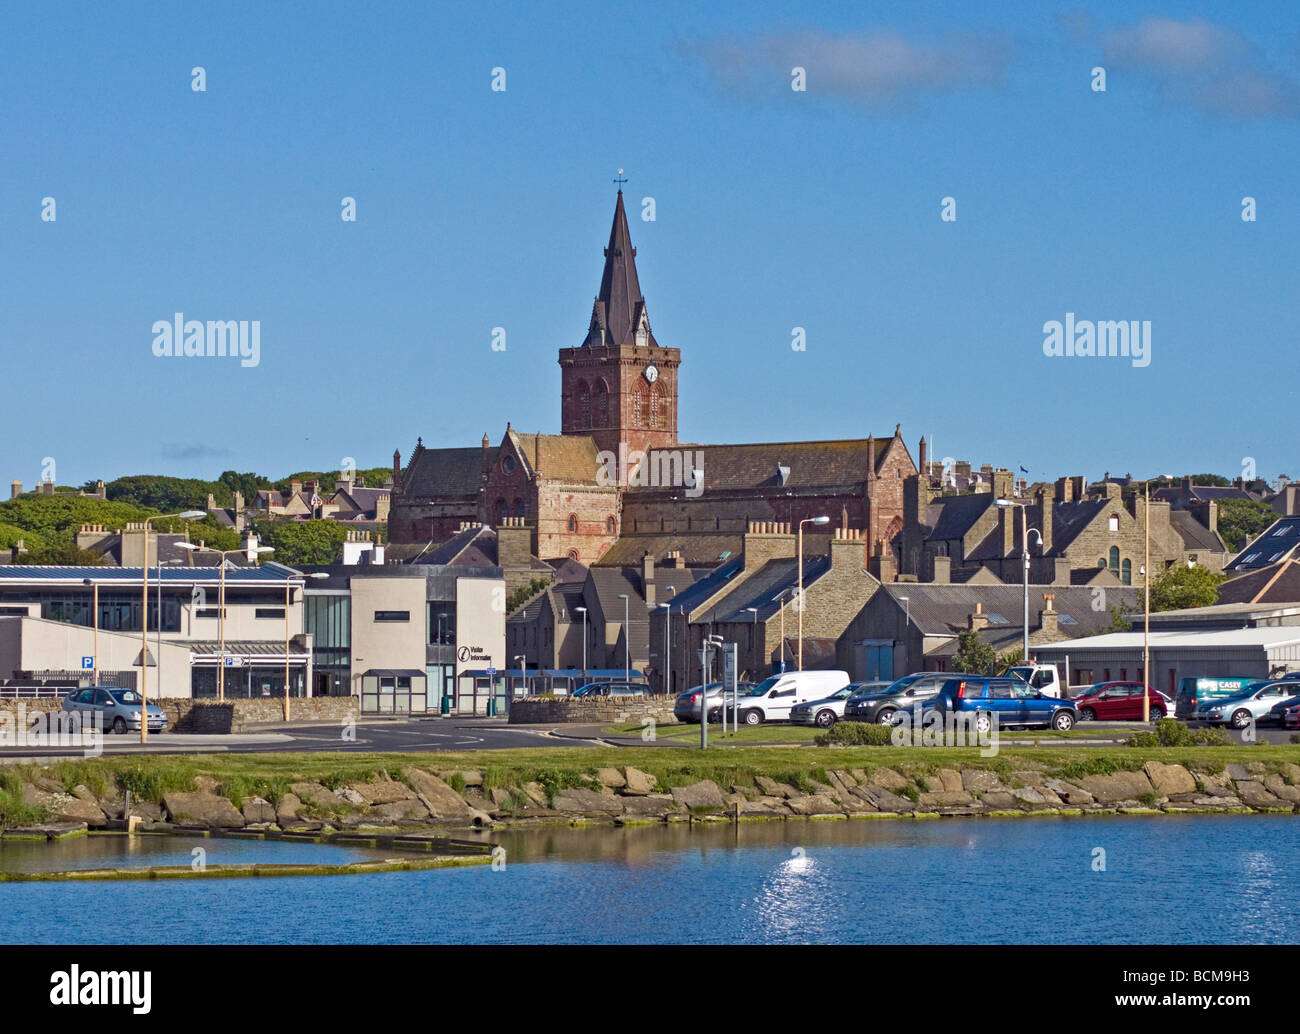 Kirkwall on Orkney Mainland in Scotland viewed from Ayre Road with St. Magnus Chthedral prominent in the centre. - Stock Image